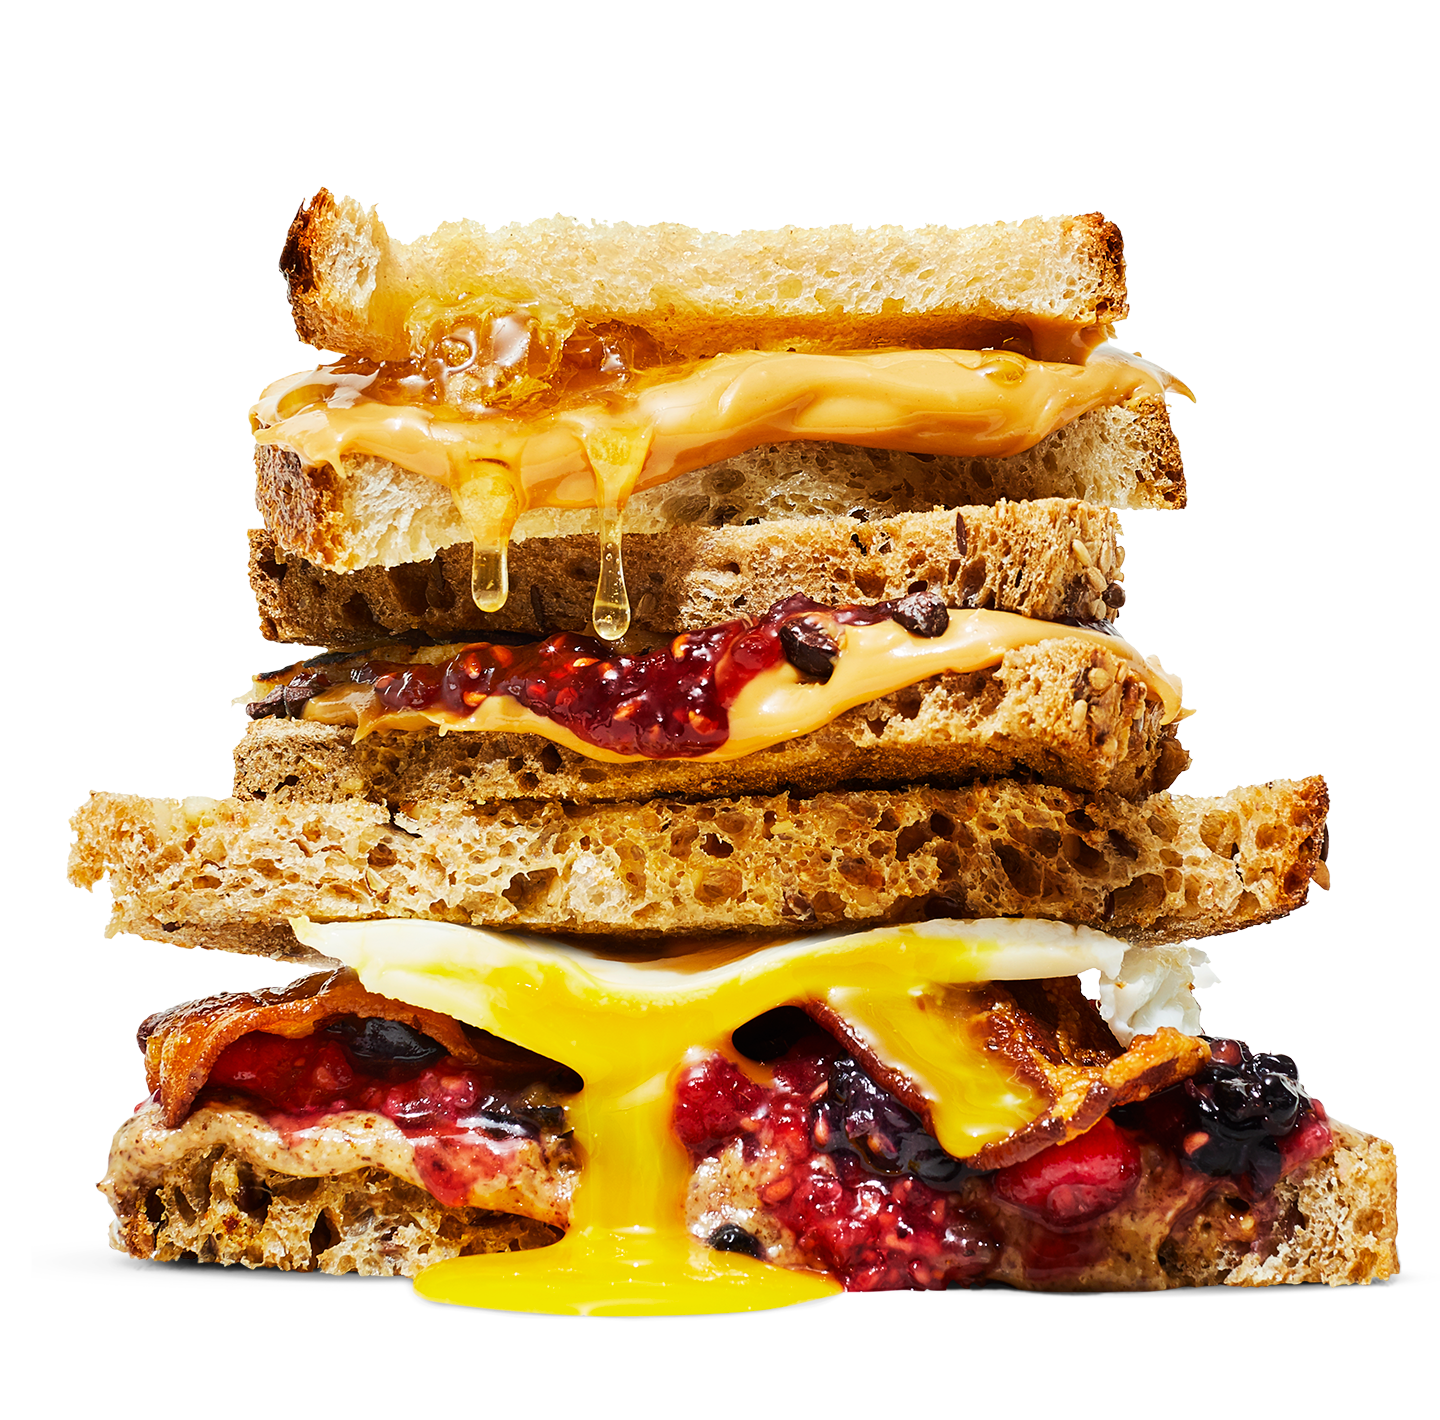 The World's Best PB&J Sandwiches, According to Top Chefs